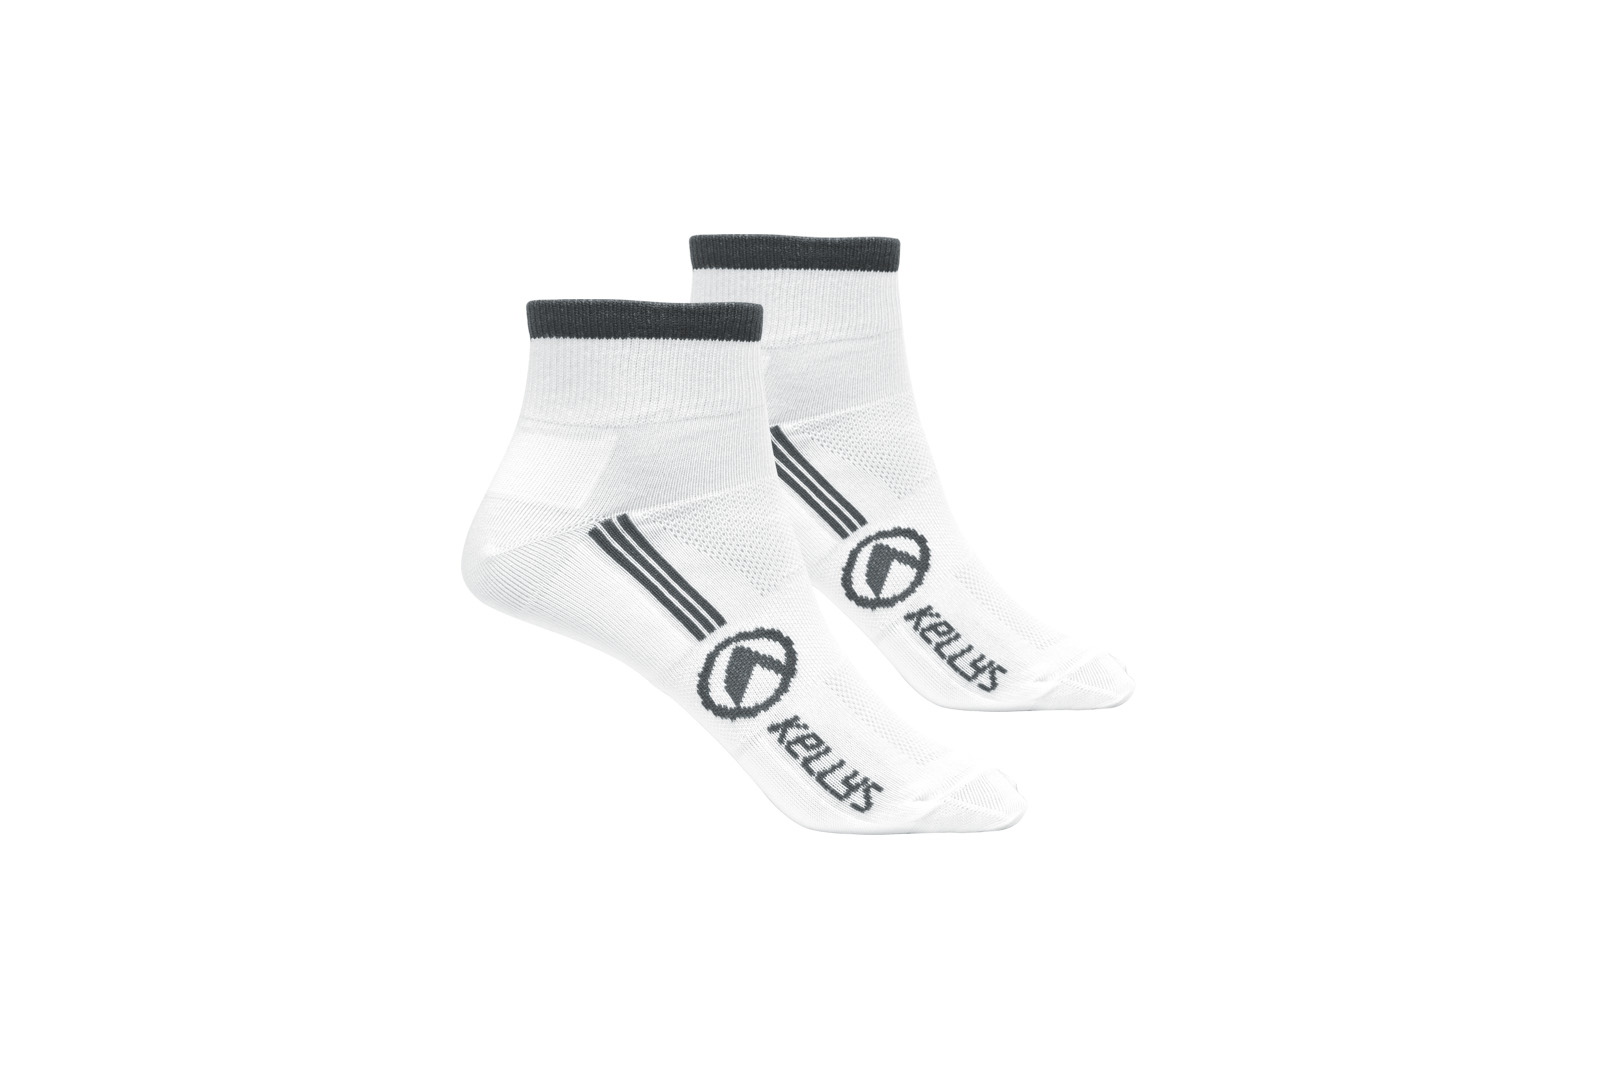 Socks KELLYS SPORT white 38-42 - bagier Sports GmbH